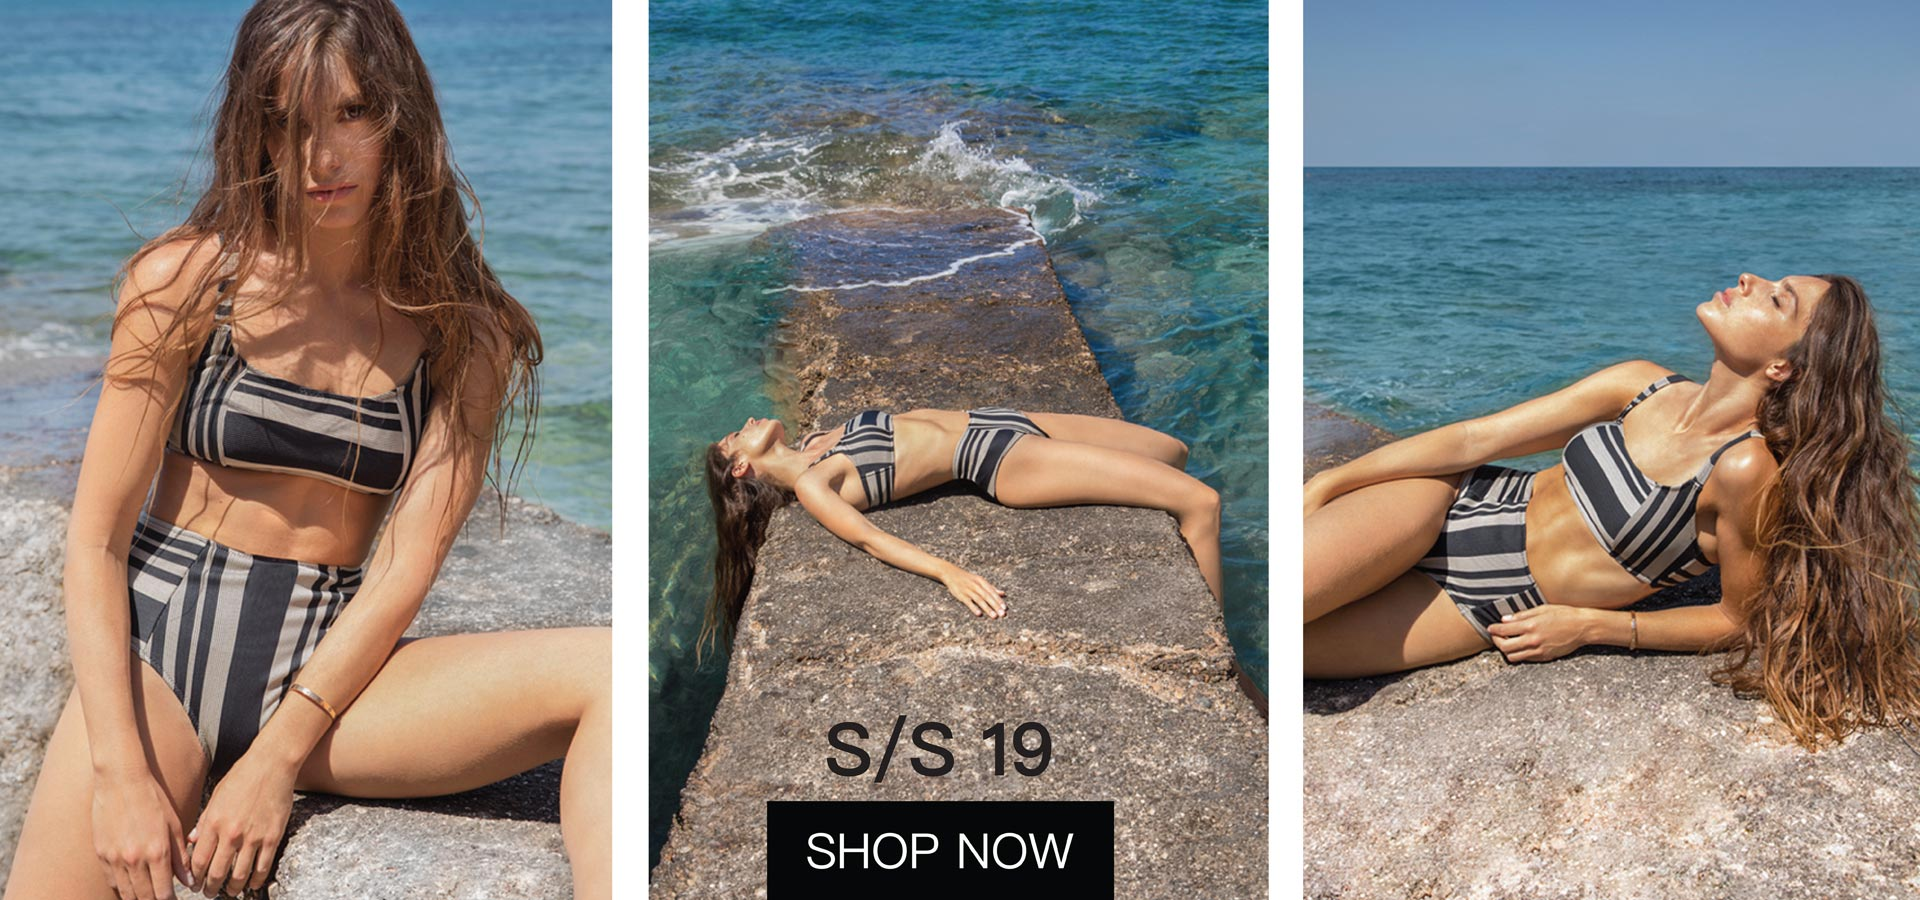 emmaswimwear new arrivals 2019